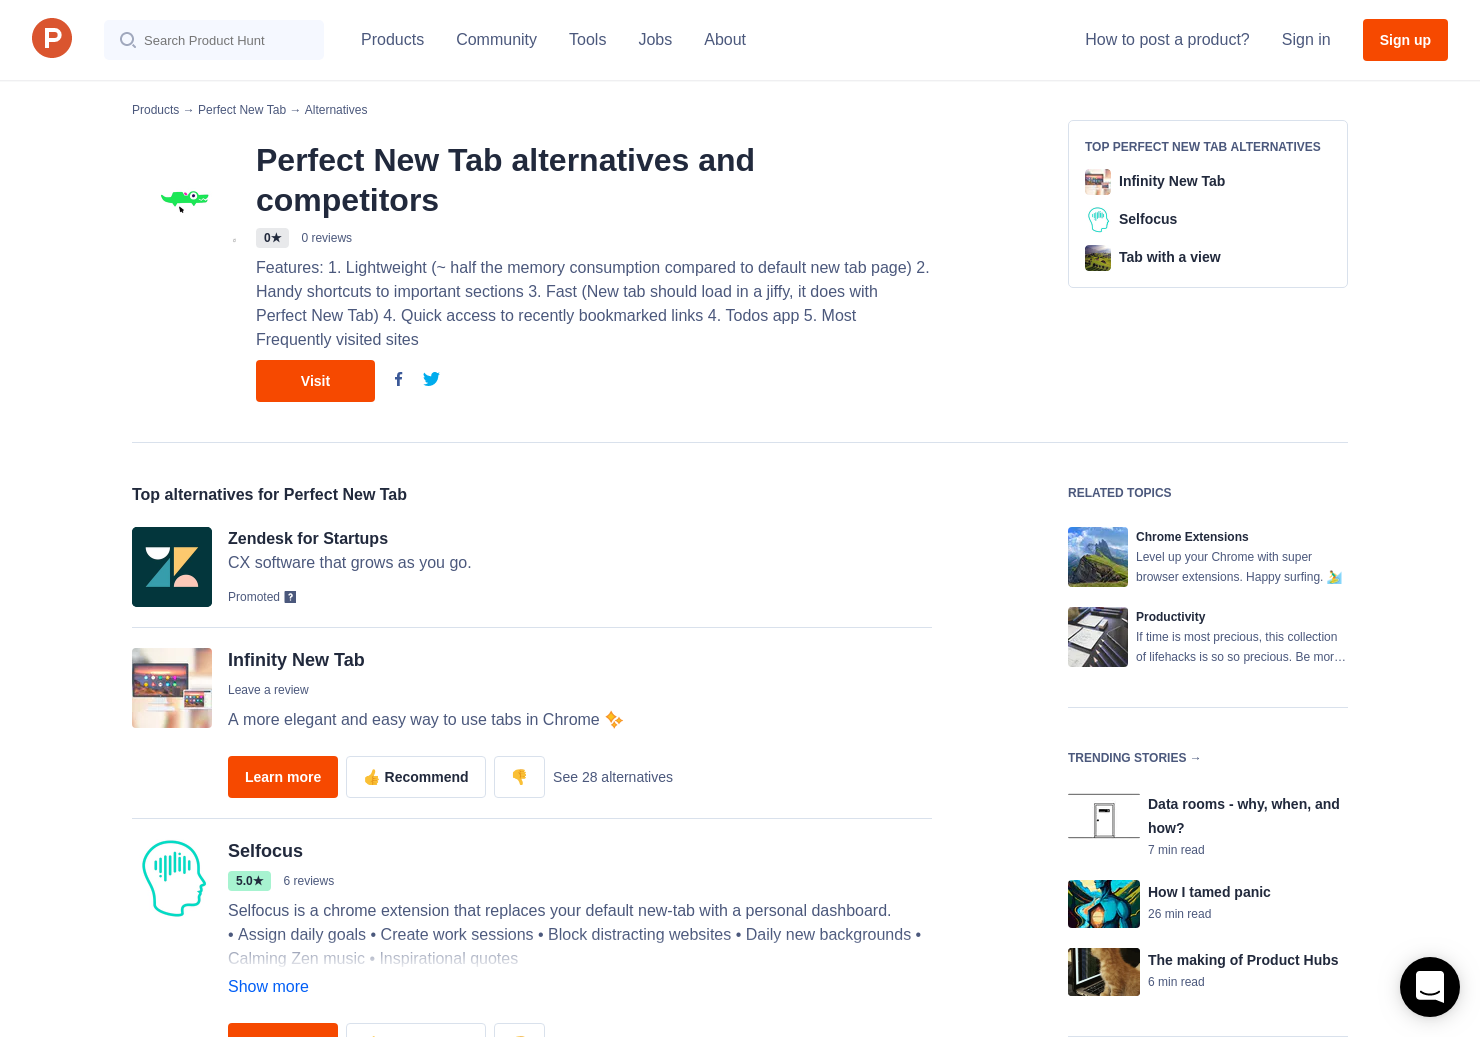 11 Alternatives to Perfect New Tab for Chrome Extensions | Product Hunt